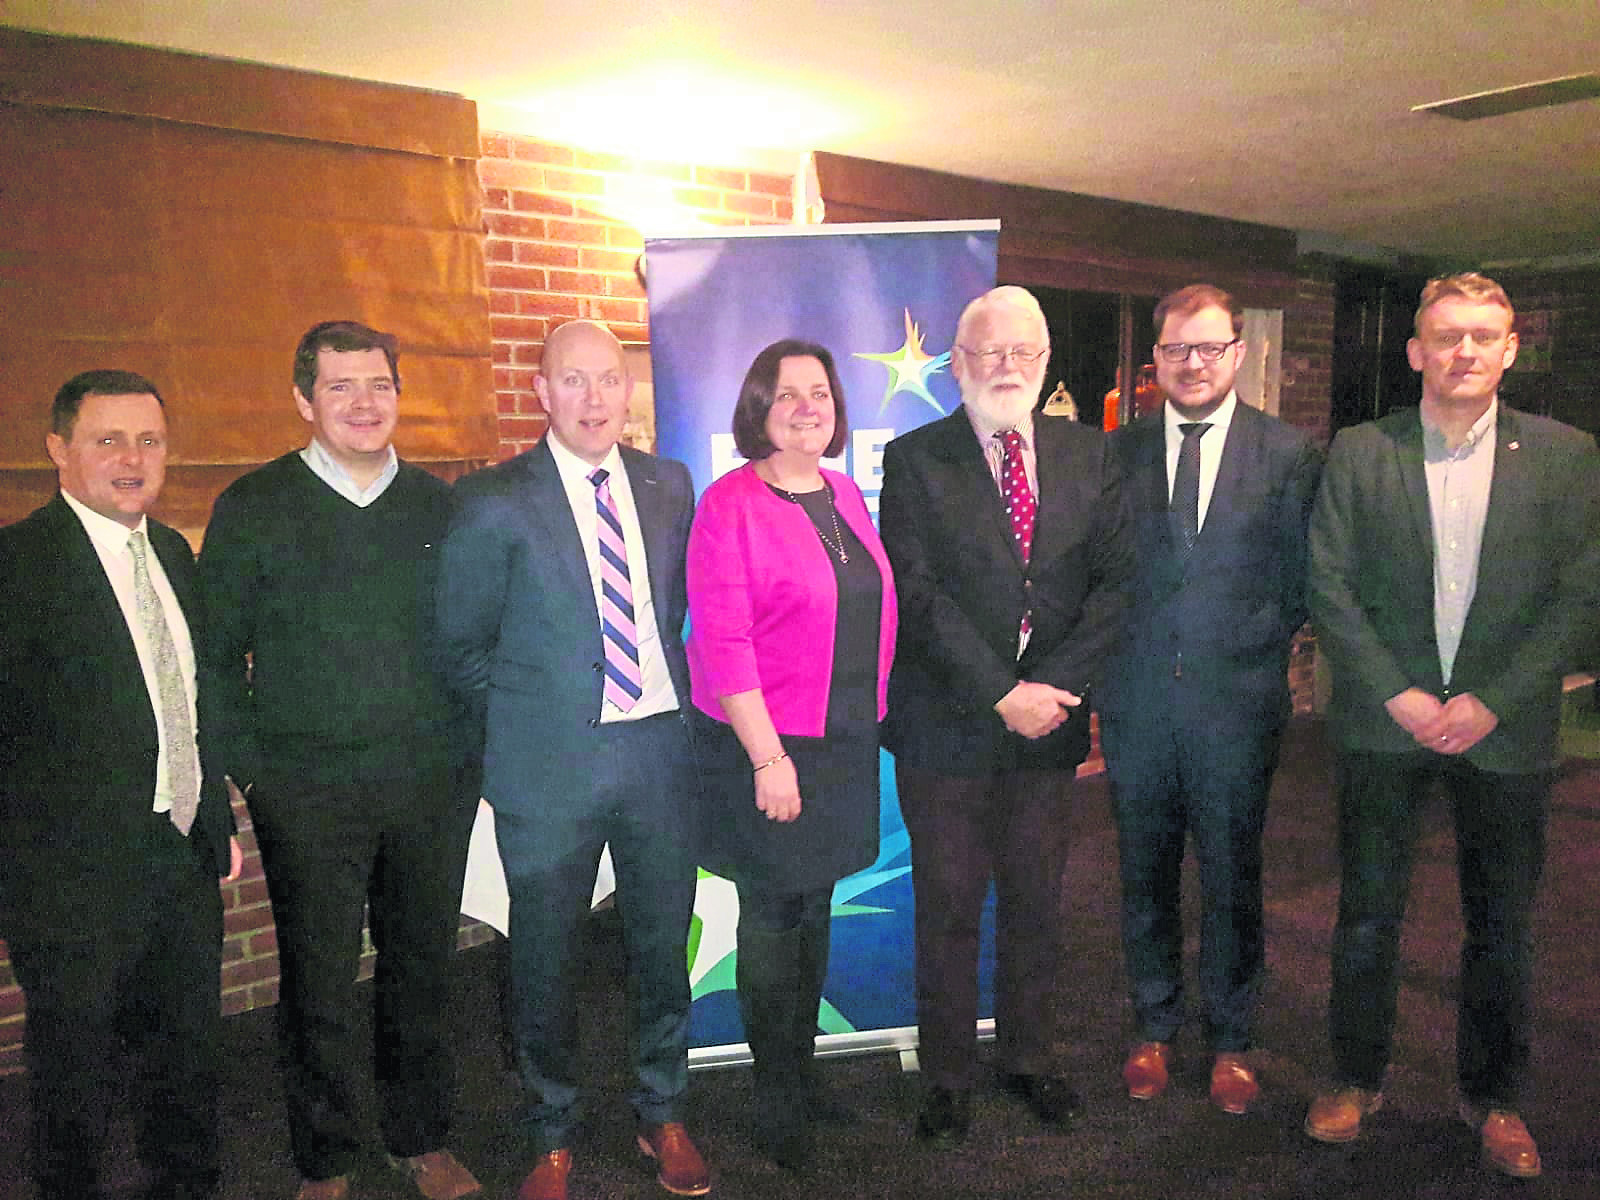 Outgoing Fine Gael Councillors Paul Ross, Colm Murray and Gerard Farrell were selected on Monday night to contest the 2019 local elections in the Ballymahon Municipal District. Pictured l to r; Cllr Gerard Farrell, Deputy Peter Burke, Cllr Paul Ross, Senator Gabrielle McFadden, John Banim Ballymahon District Chairman, Cllr Colm Murray and Cllr Micheàl Carrigy.